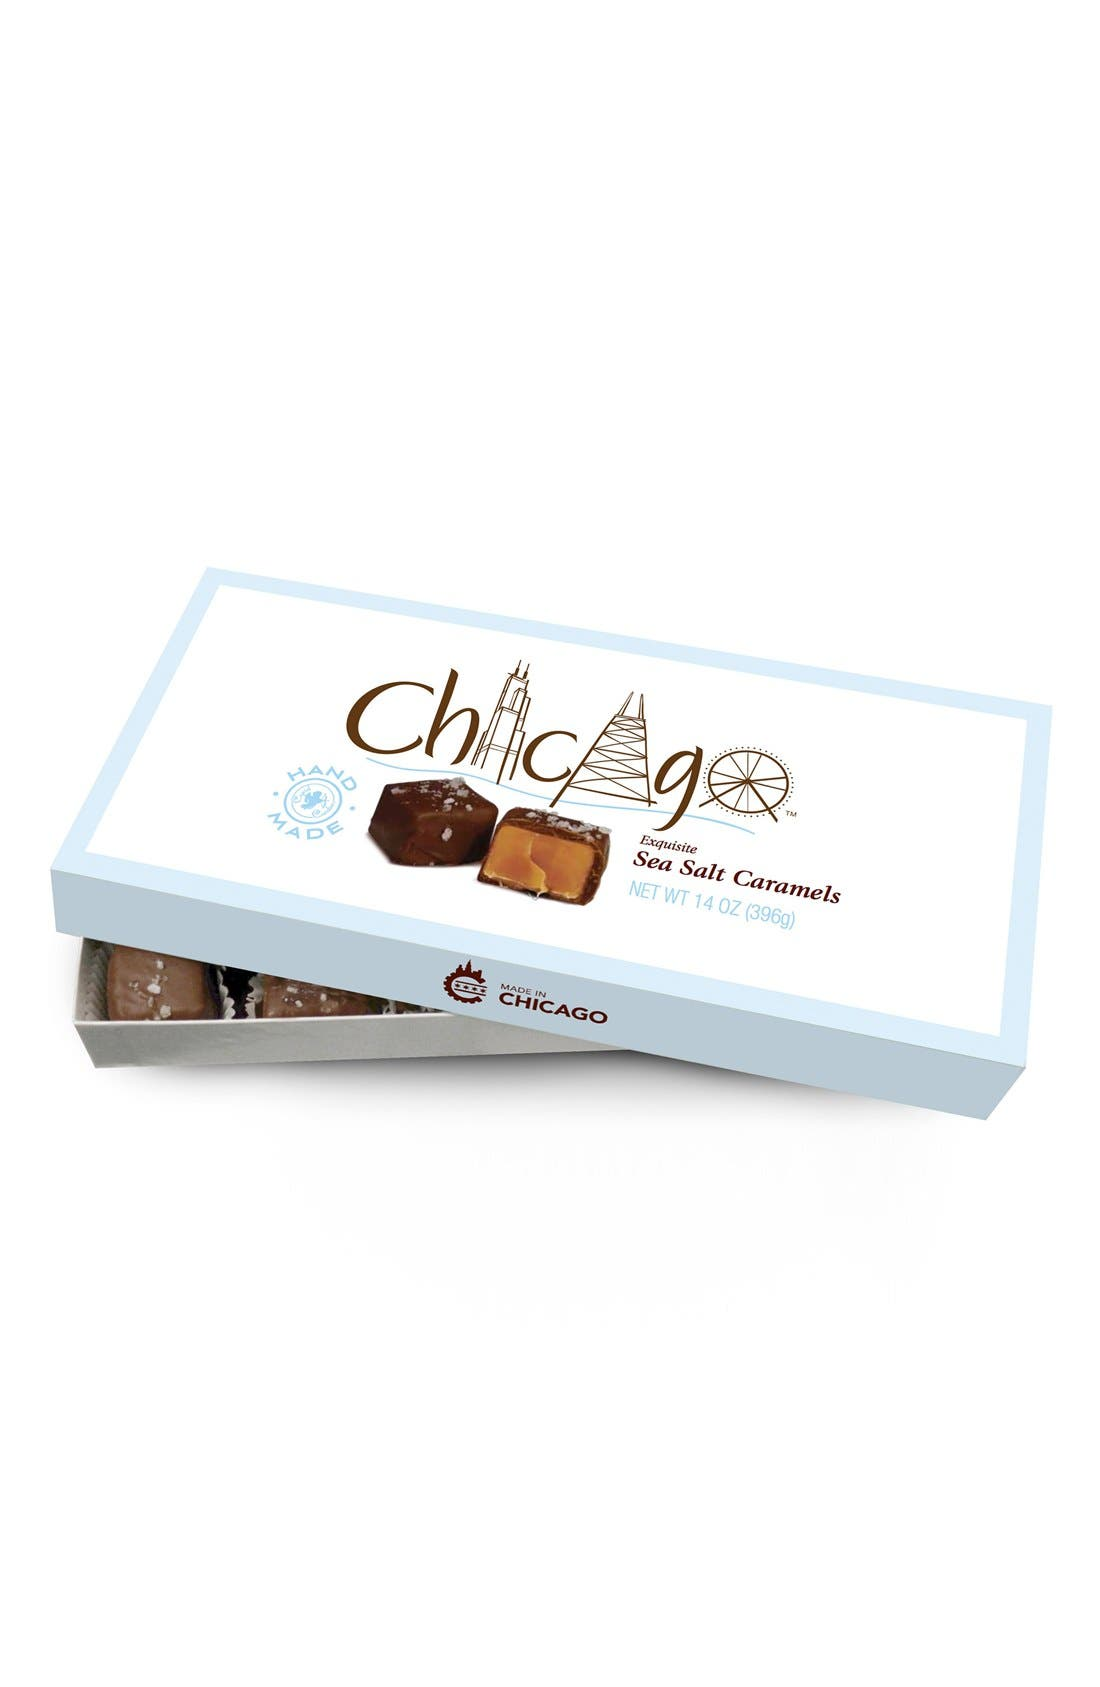 Chicago Classic Confections Sea Salt Caramels